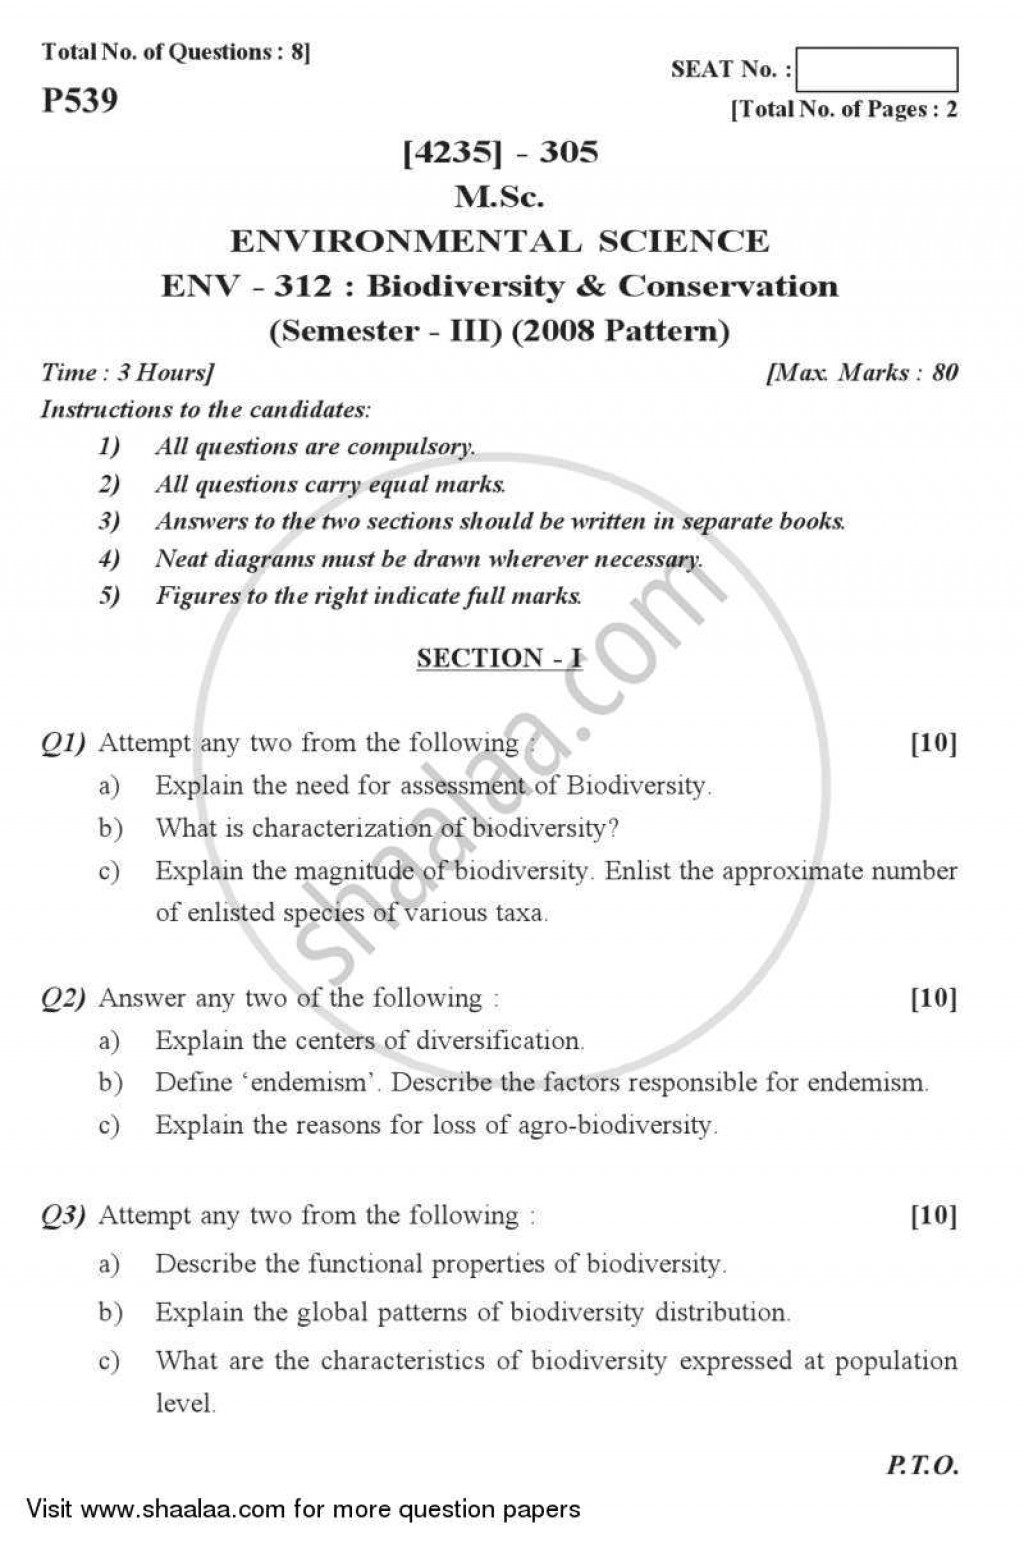 001 Essay Example Biodiversity Topics University Of Pune Master Msc Conservation Environmental Science Semester 2013 2101f4167960044618caf40eb408c72b0 Phenomenal Questions Large